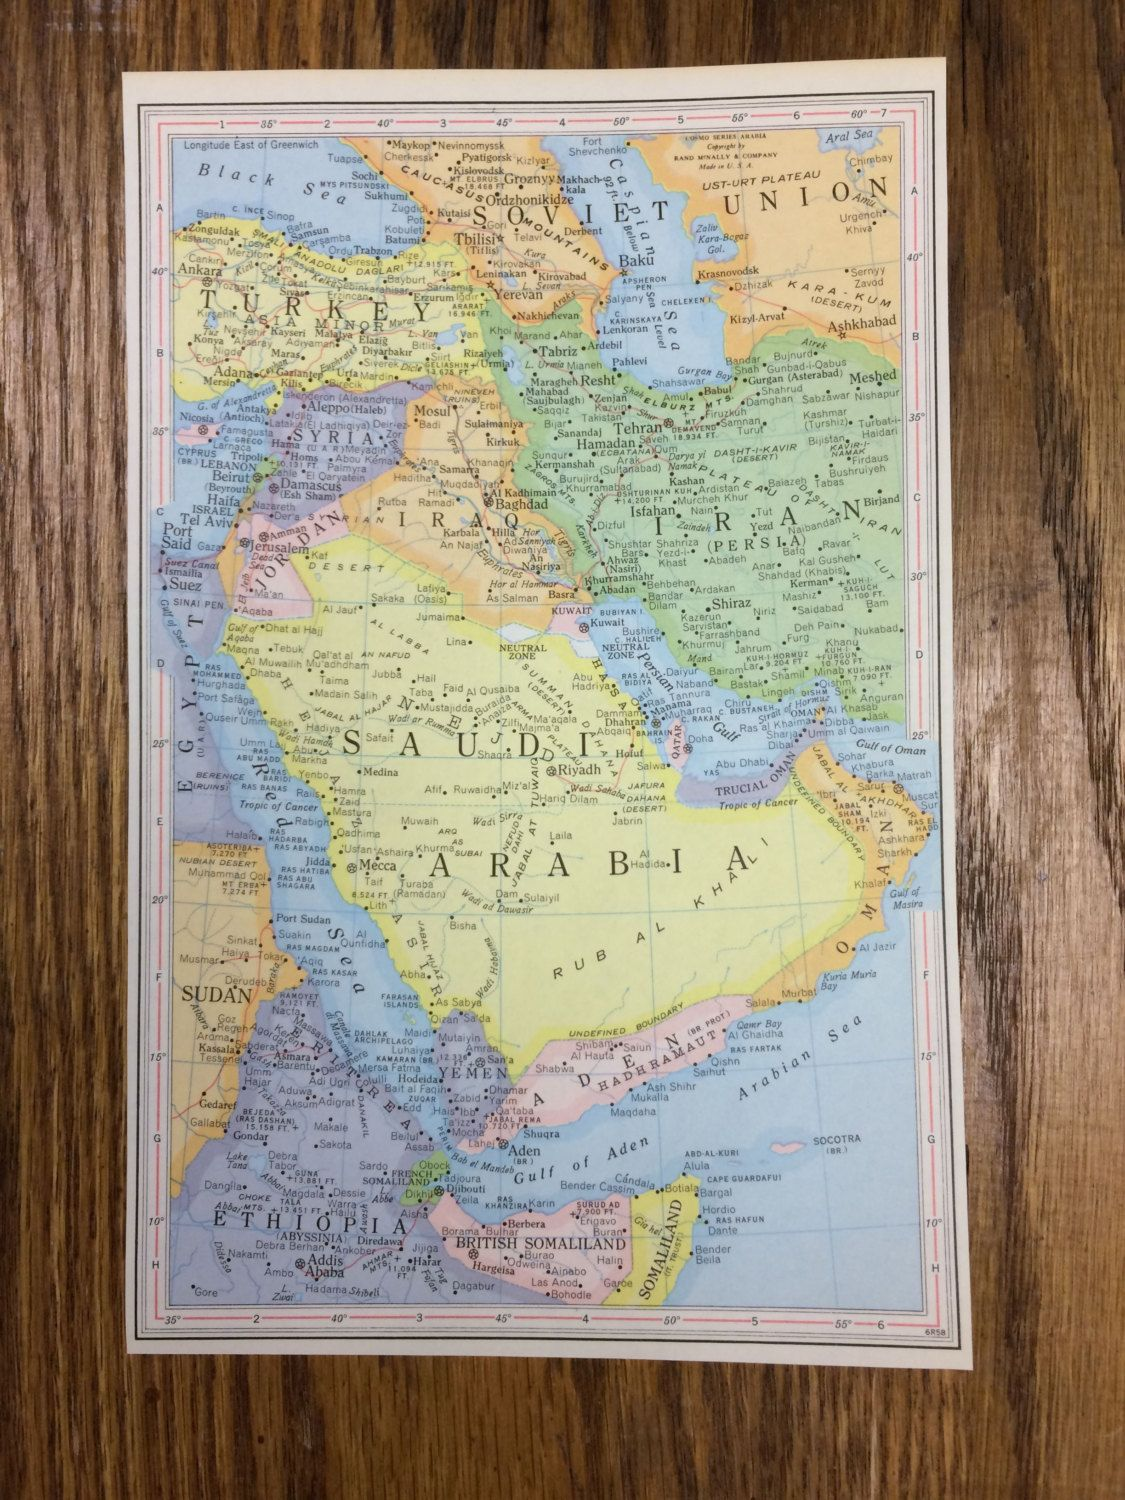 Saudi arabia large map 1959 space age world atlas antique rand 1959 saudi arabia large map 1250 use pin10 at checkout for 10 off gumiabroncs Images